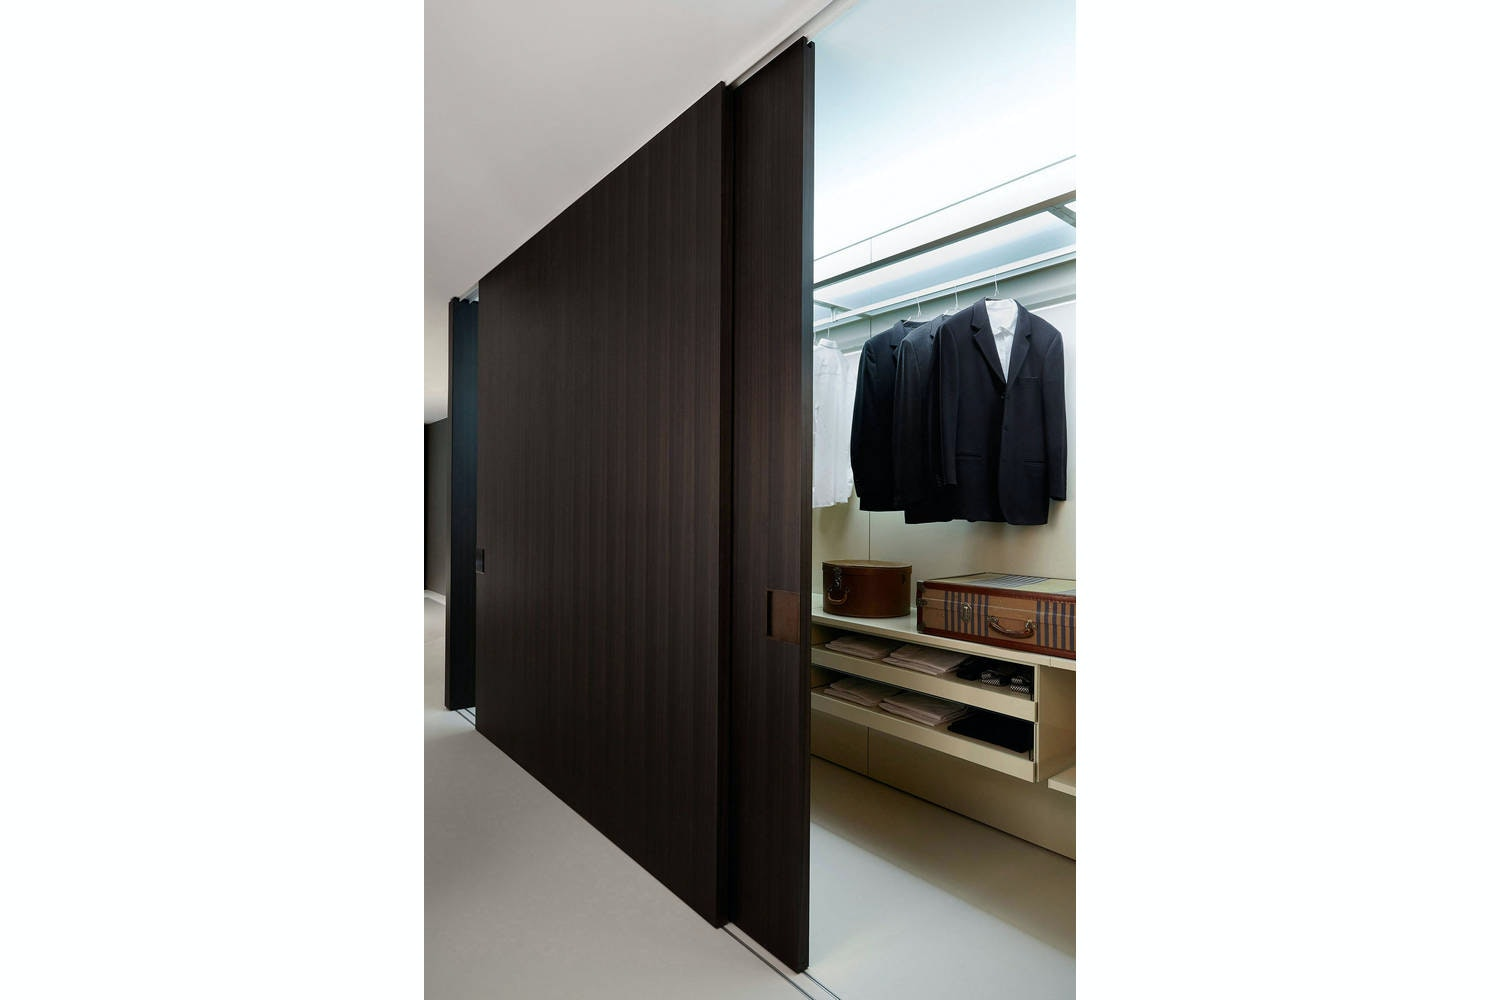 Shift Sliding Doors by Piero Lissoni for Porro